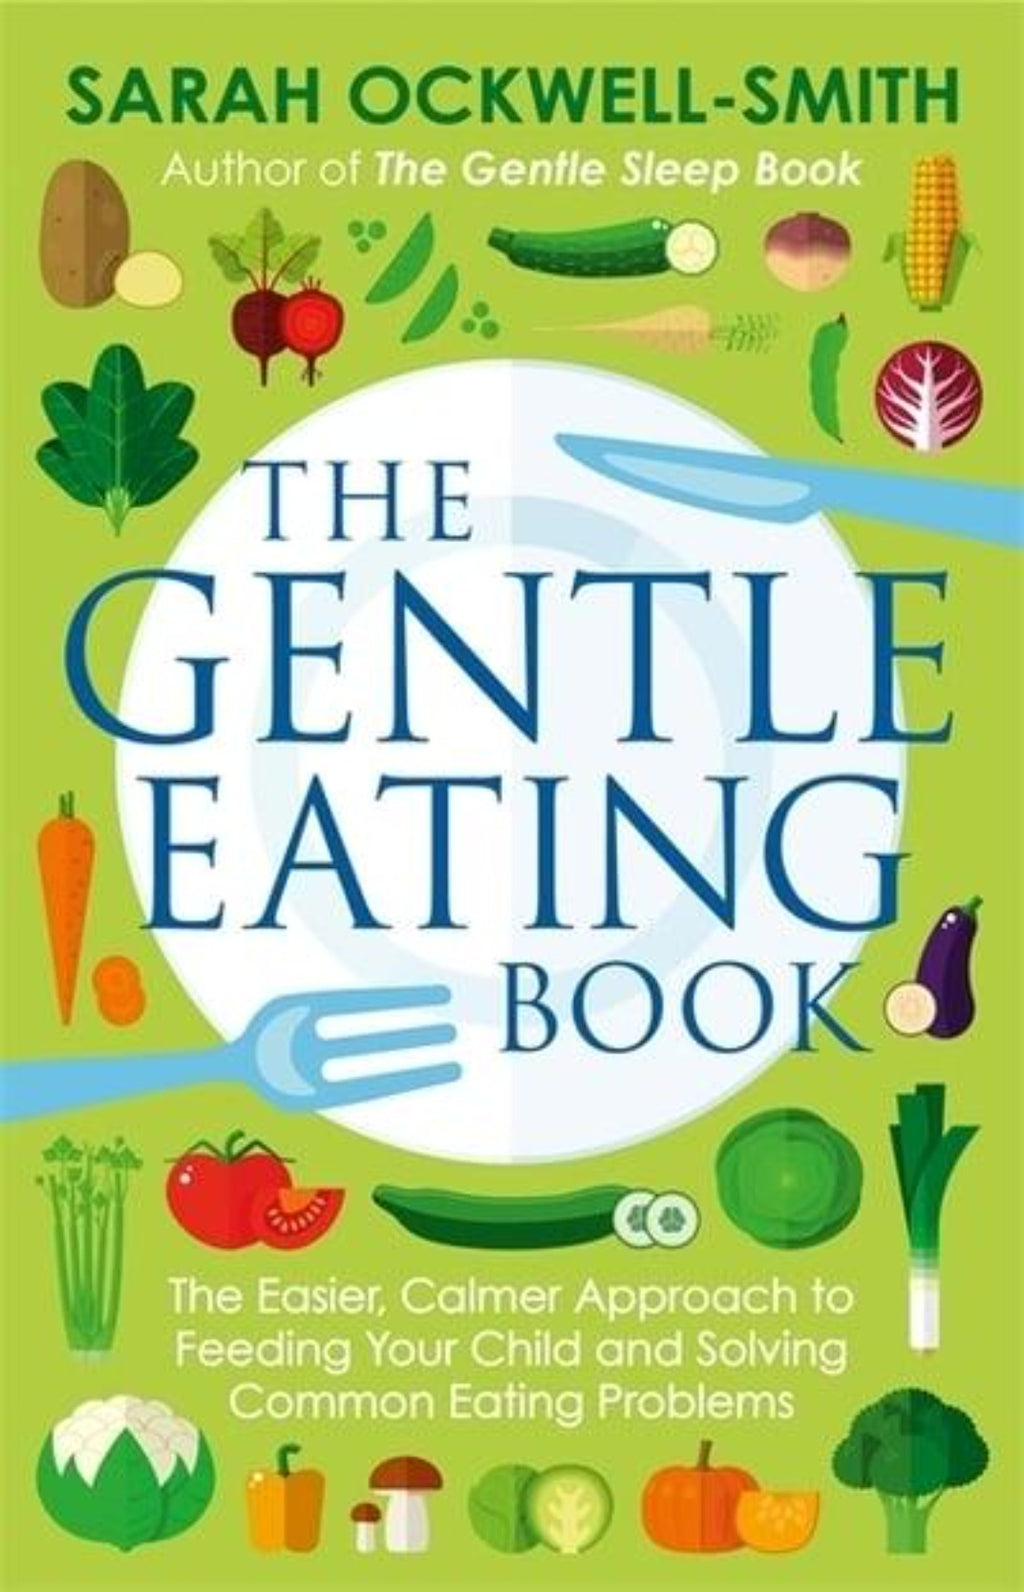 The Gentle Eating Book : The Easier, Calmer Approach to Feeding Your Child and Solving Common Eating Problems